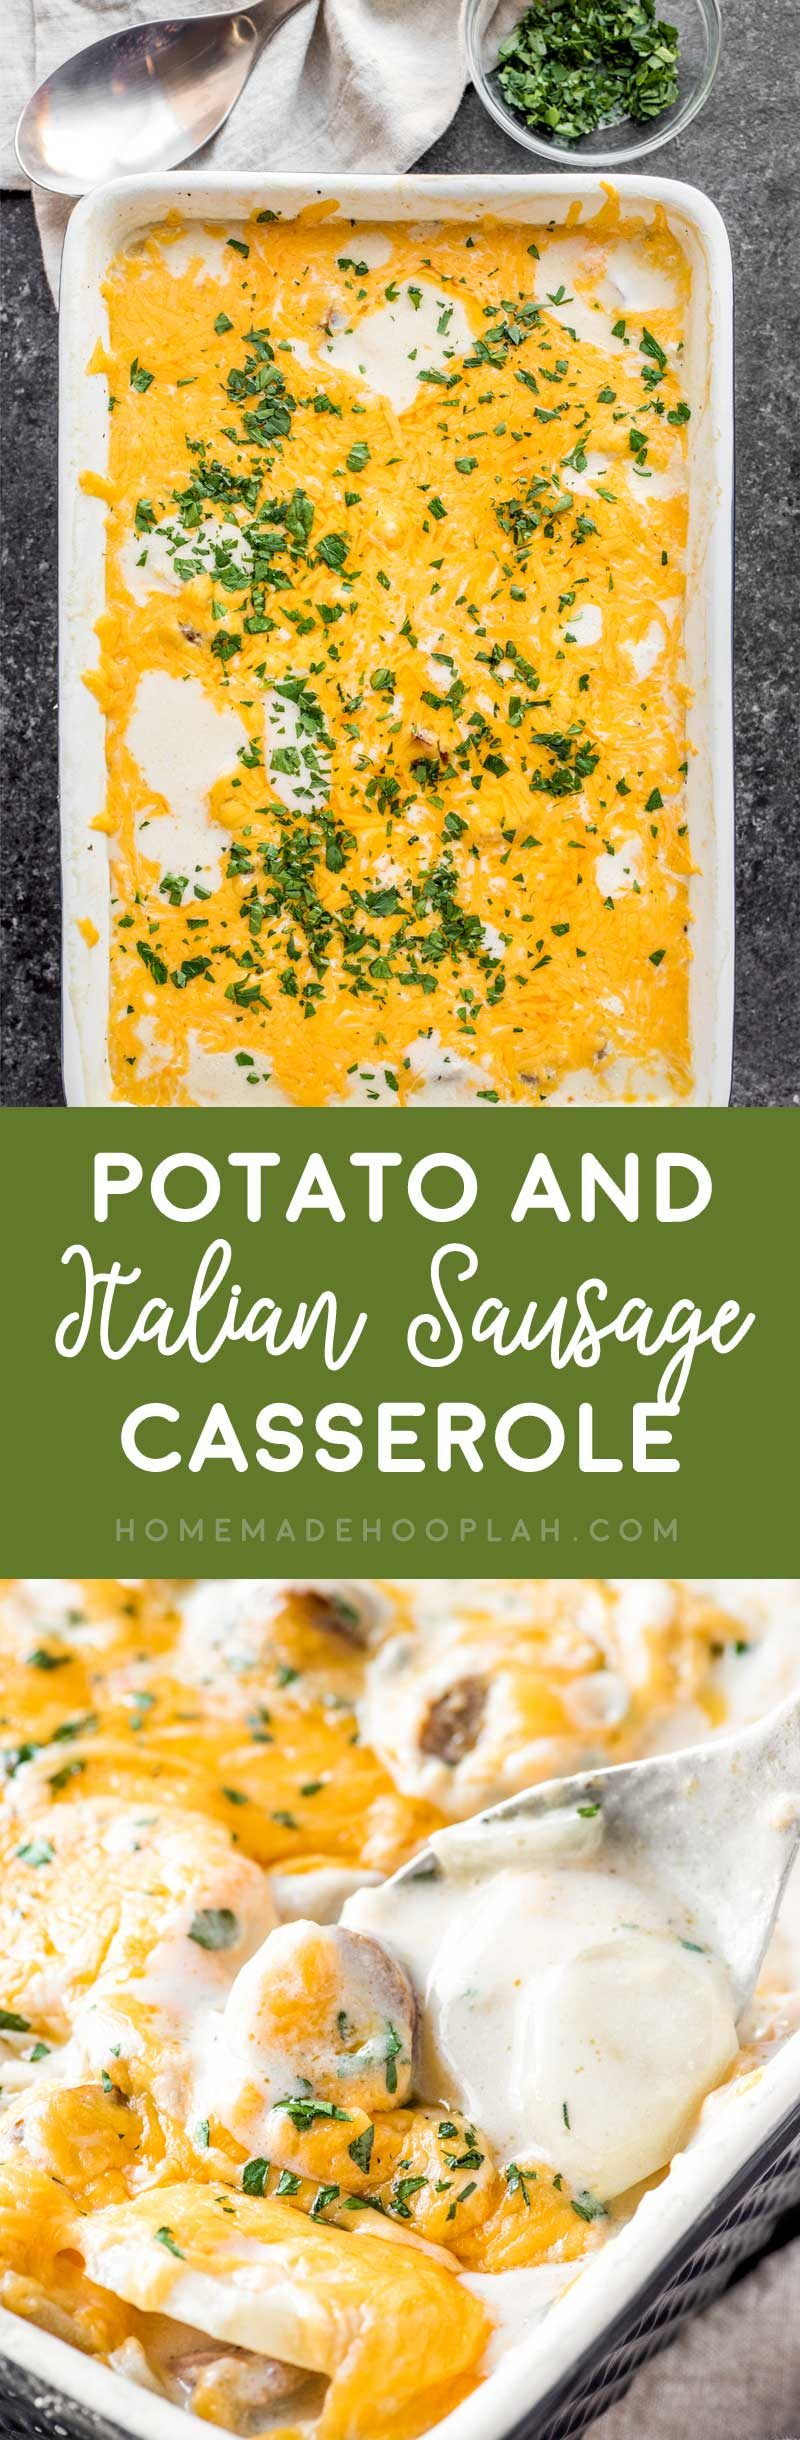 Potato and Italian Sausage Casserole! A creamy casserole made with potatoes, cheese, and savory Johnsonville Italian Sausage cooked with the Johnsonville Sizzling Sausage Grill. | #ad @jvillesausage HomemadeHooplah.com